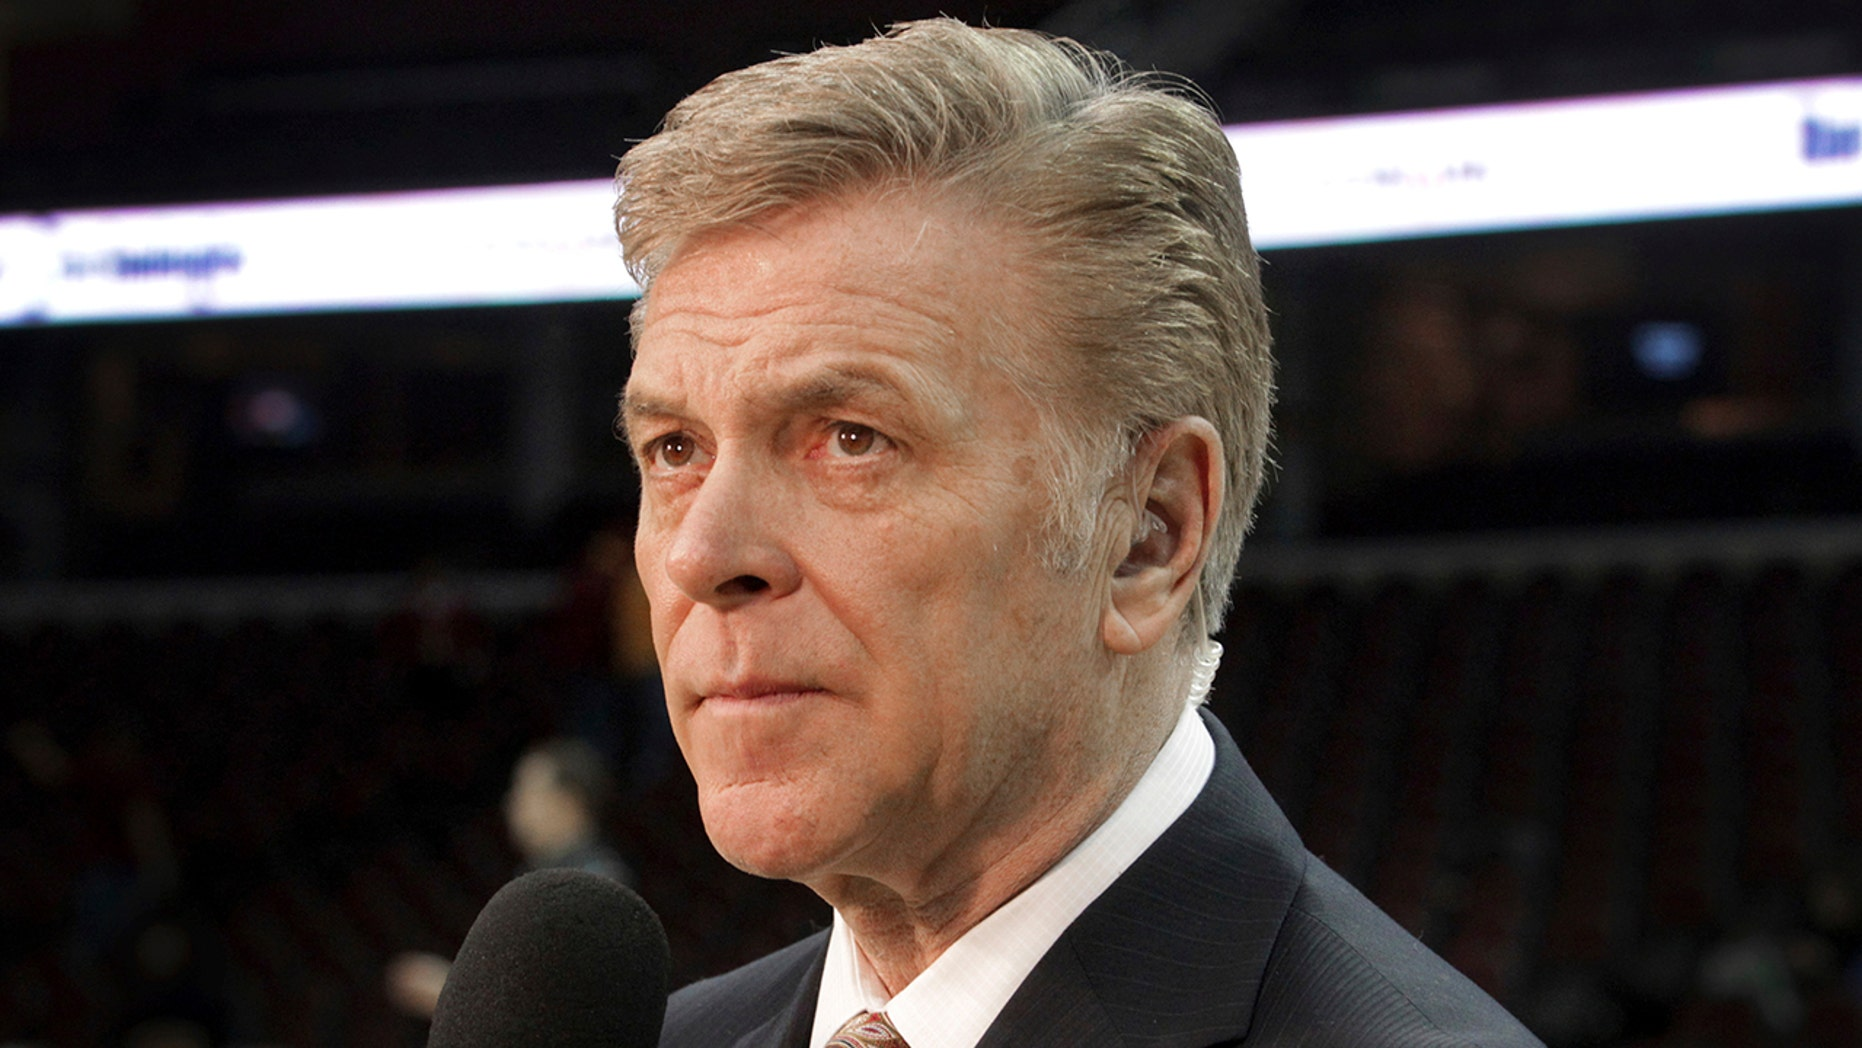 "In this Feb. 19, 2014, photo, longtime sportscaster and announcer Fred McLeod is shown at a Cleveland Cavaliers game in Cleveland. McLeod has died. He was 67. The Cavaliers said McLeod died suddenly Monday night, Sept. 9, 2019, but did not elaborate. They called him a ""great friend and teammate"" and a ""heart-felt ambassador."" (Lynn Ischay/The Plain Dealer via AP)"